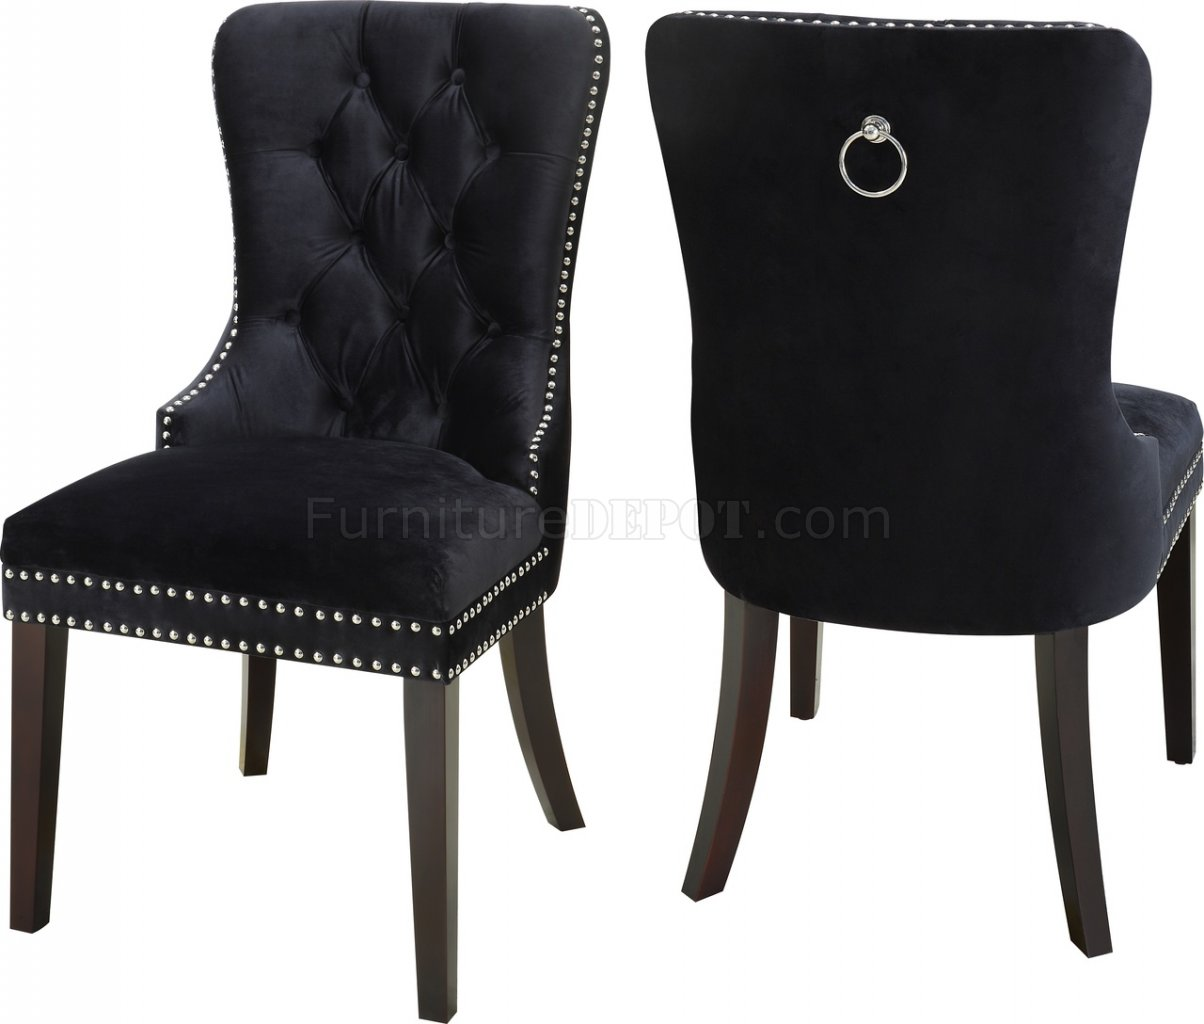 black leather sofa with nailheads cover for solsta bed nikki dining chair 740 set of 2 velvet fabric by ...